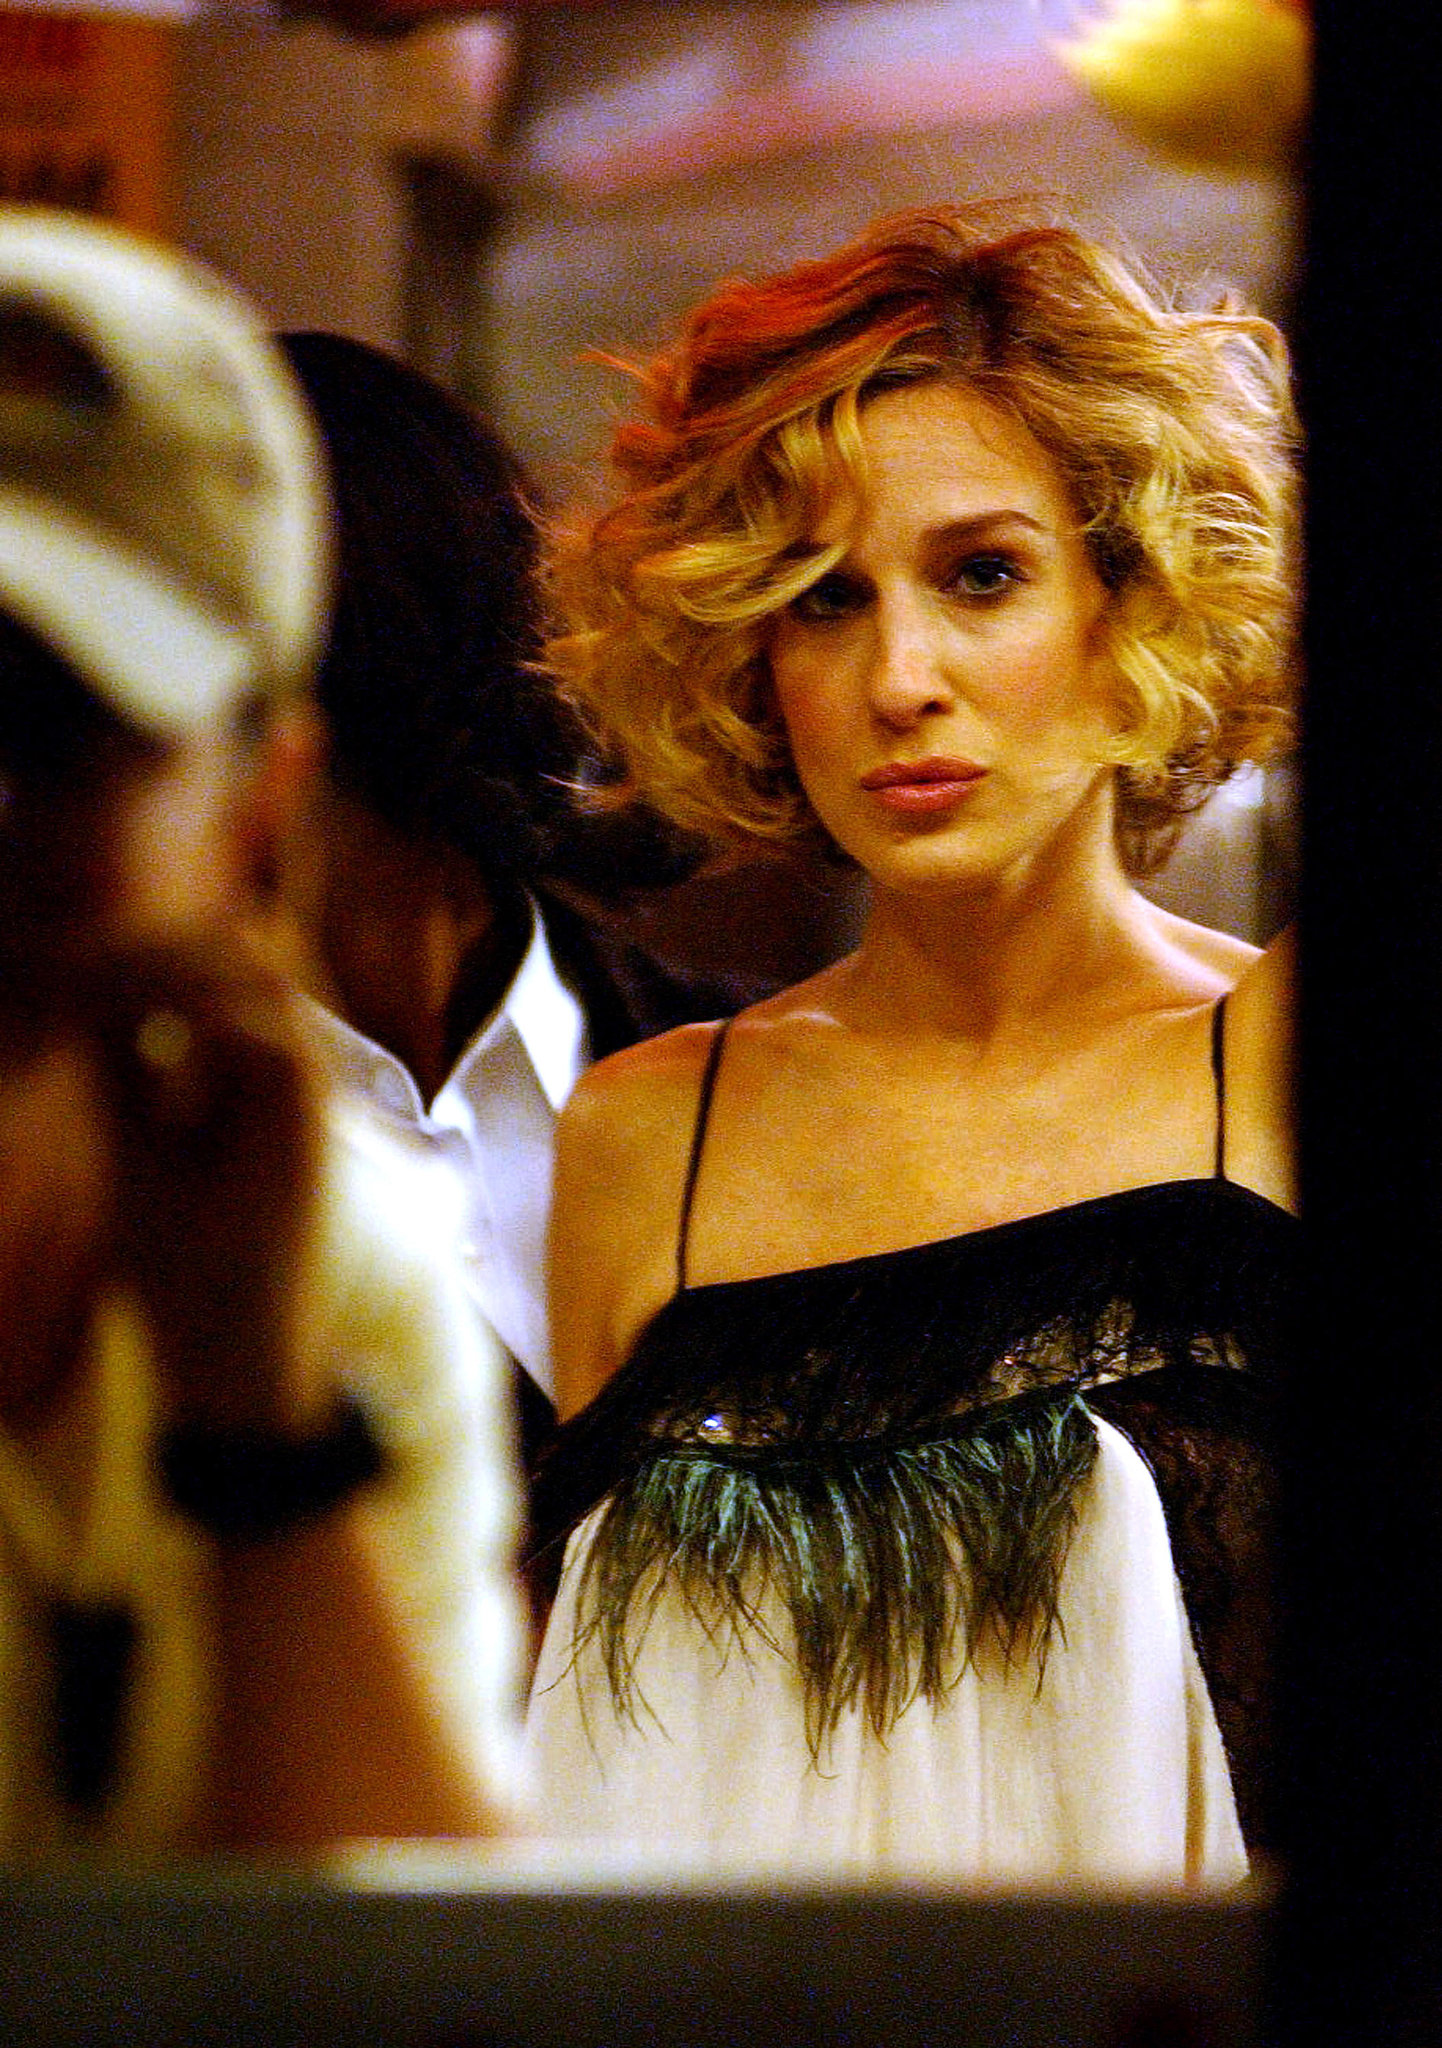 Carrie tries a bouncy bob in season five, but her signature curls remain intact.